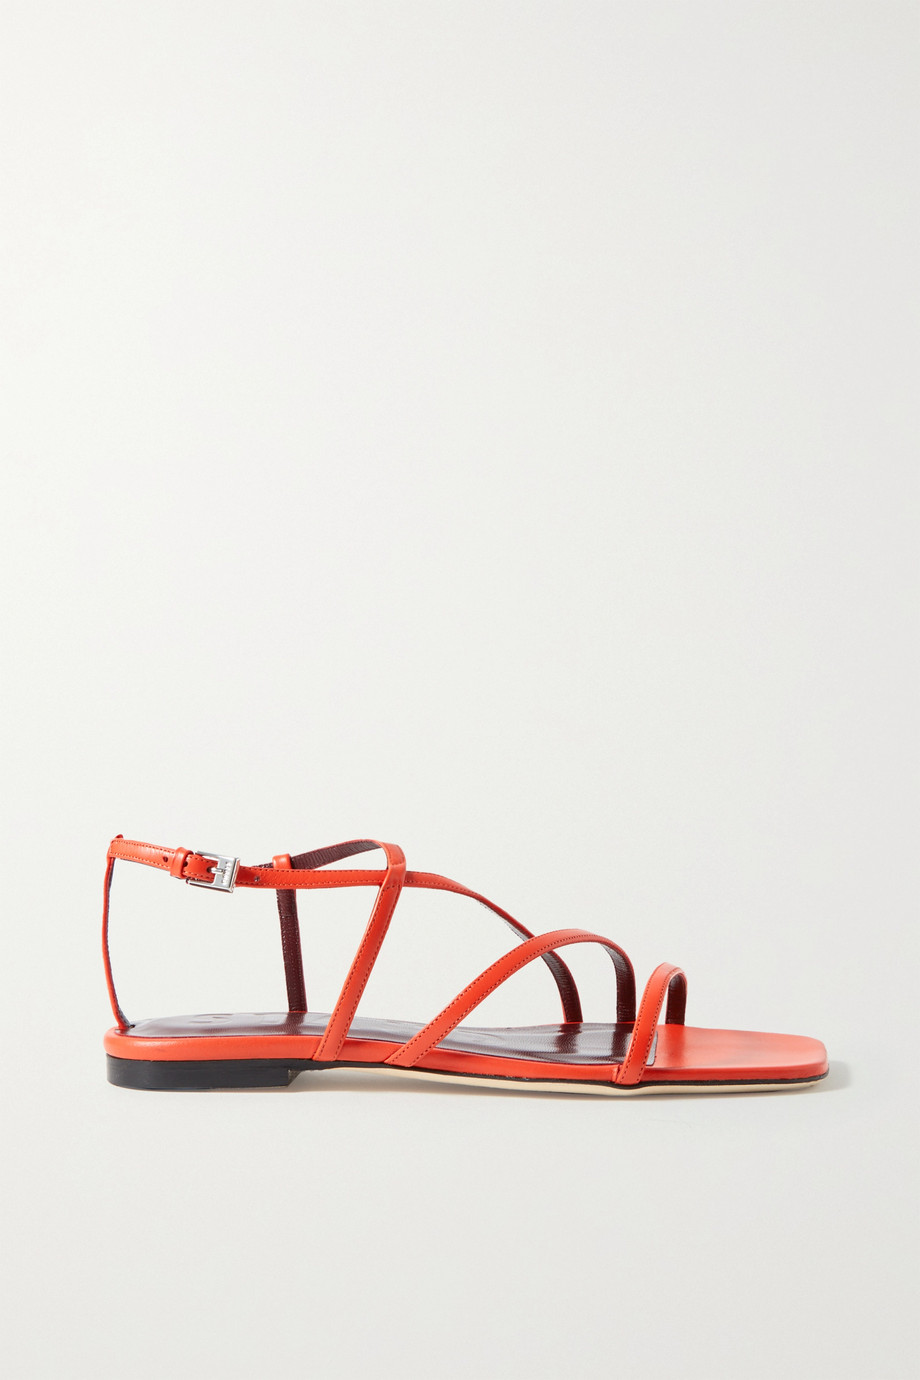 STAUD Gitane leather sandals